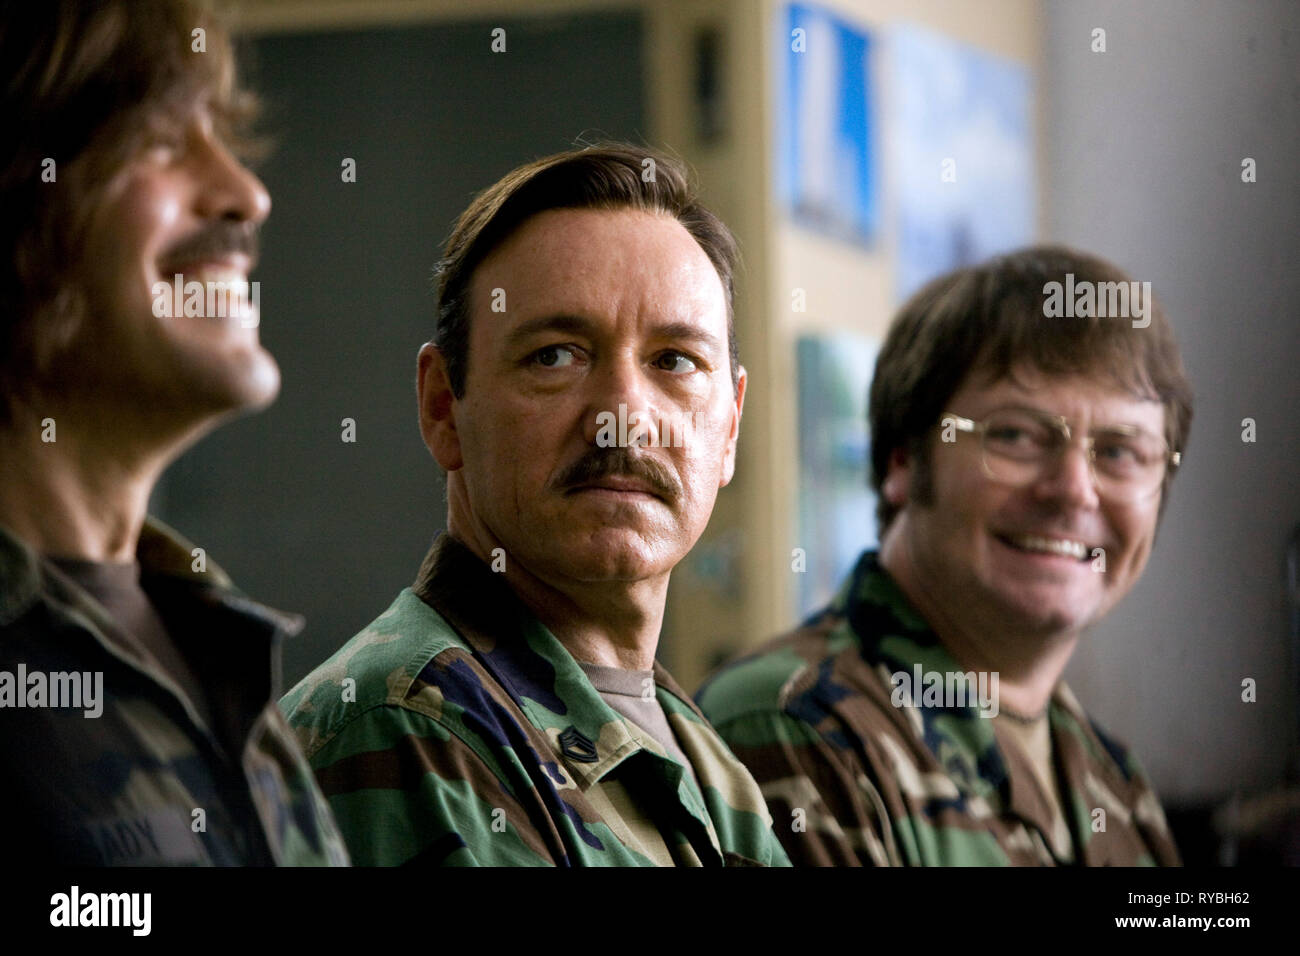 GEORGE CLOONEY, KEVIN SPACEY, NICK OFFERMAN, THE MEN WHO STARE AT GOATS, 2009 - Stock Image